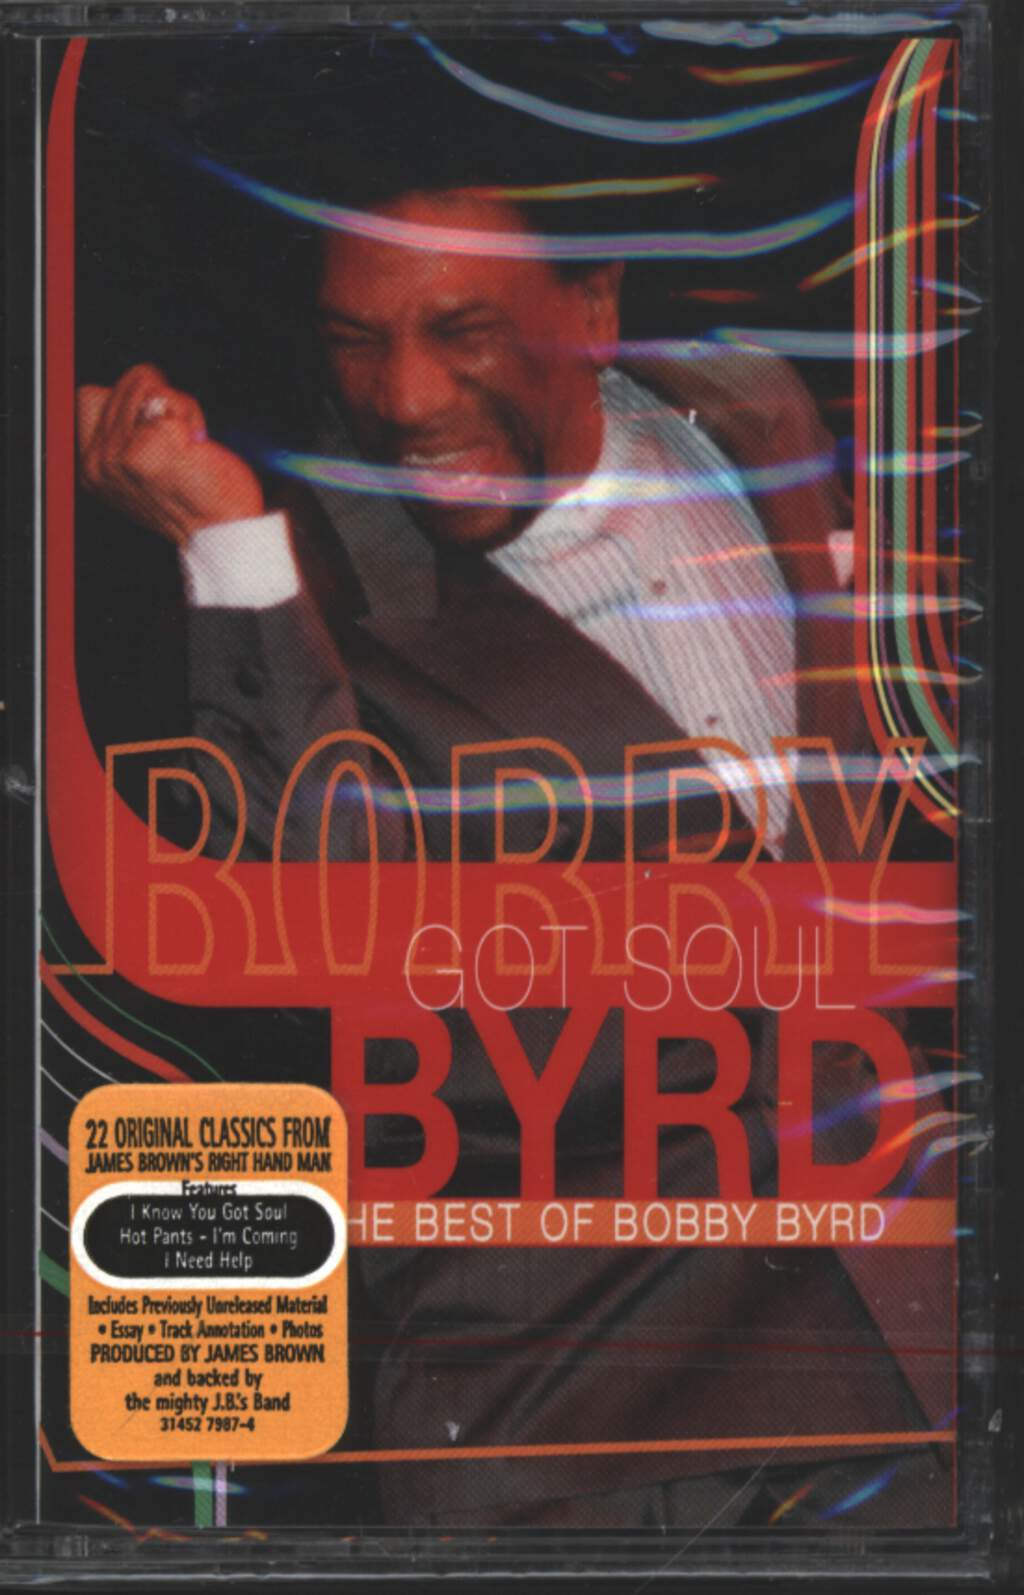 Bobby Byrd: Bobby Byrd Got Soul (The Best Of Bobby Byrd), Tape